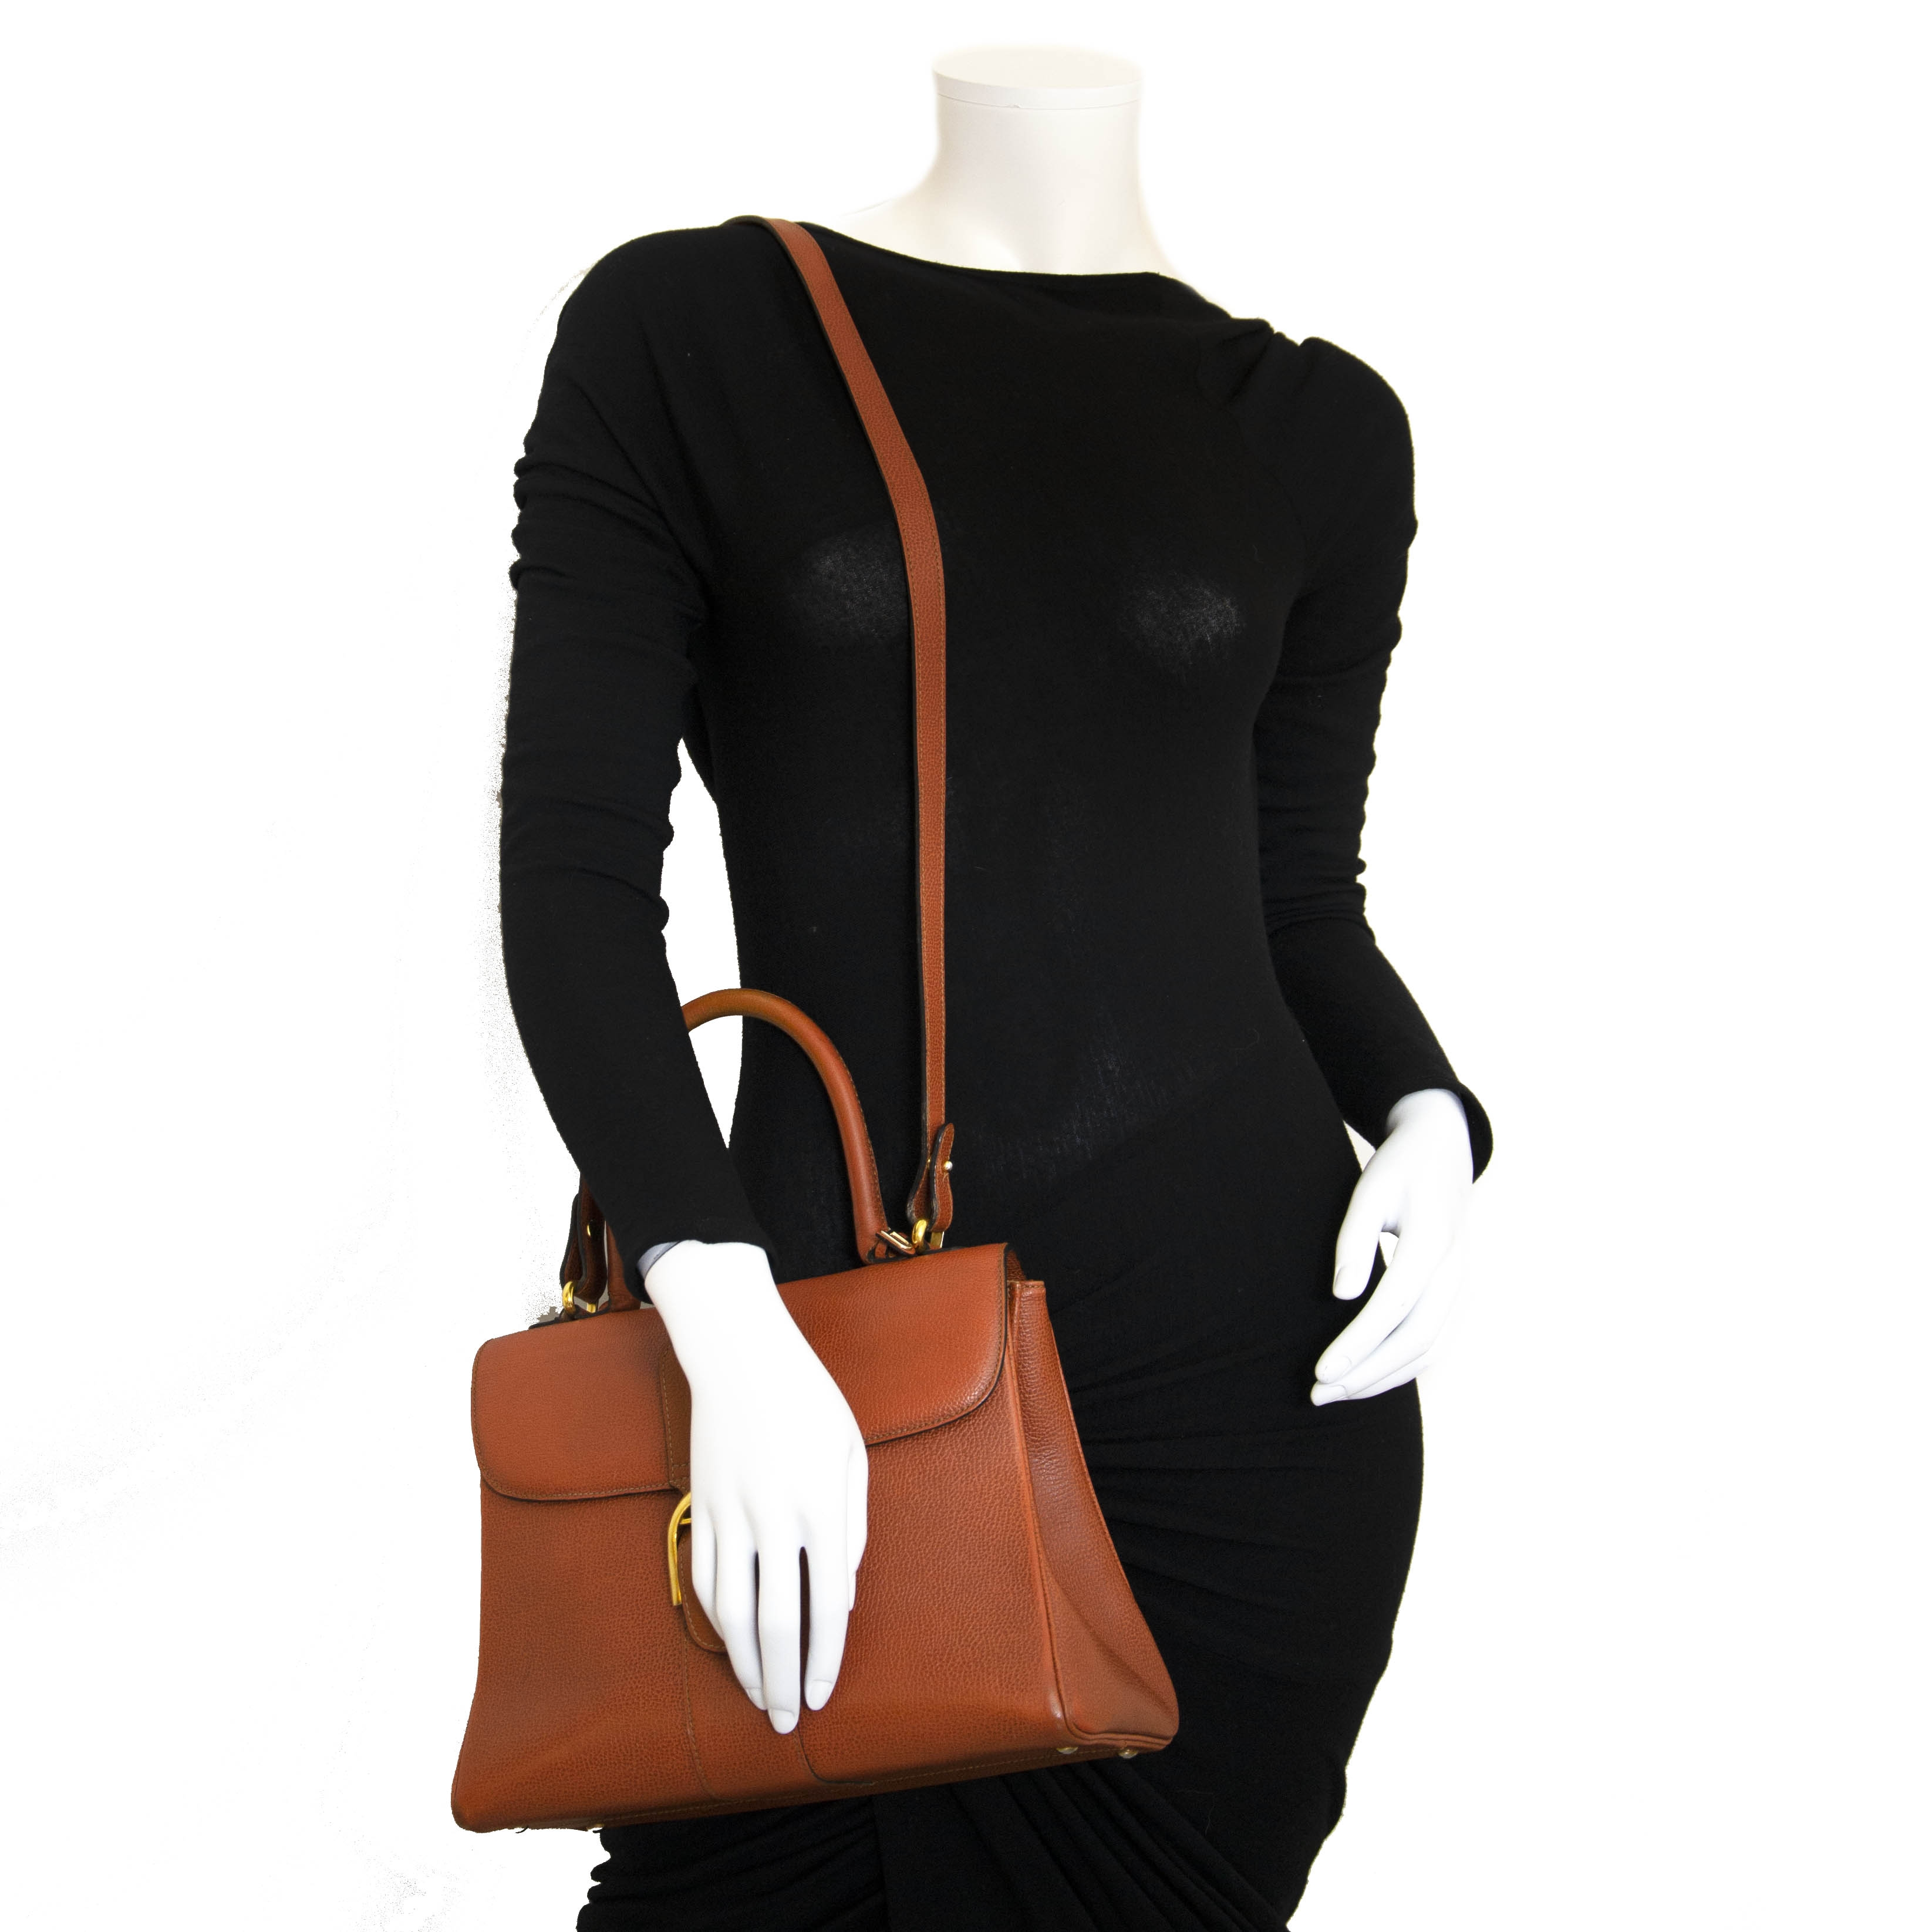 Delvaux Brillant Rust MM + Strap for the best price at Labellov secondhand luxury